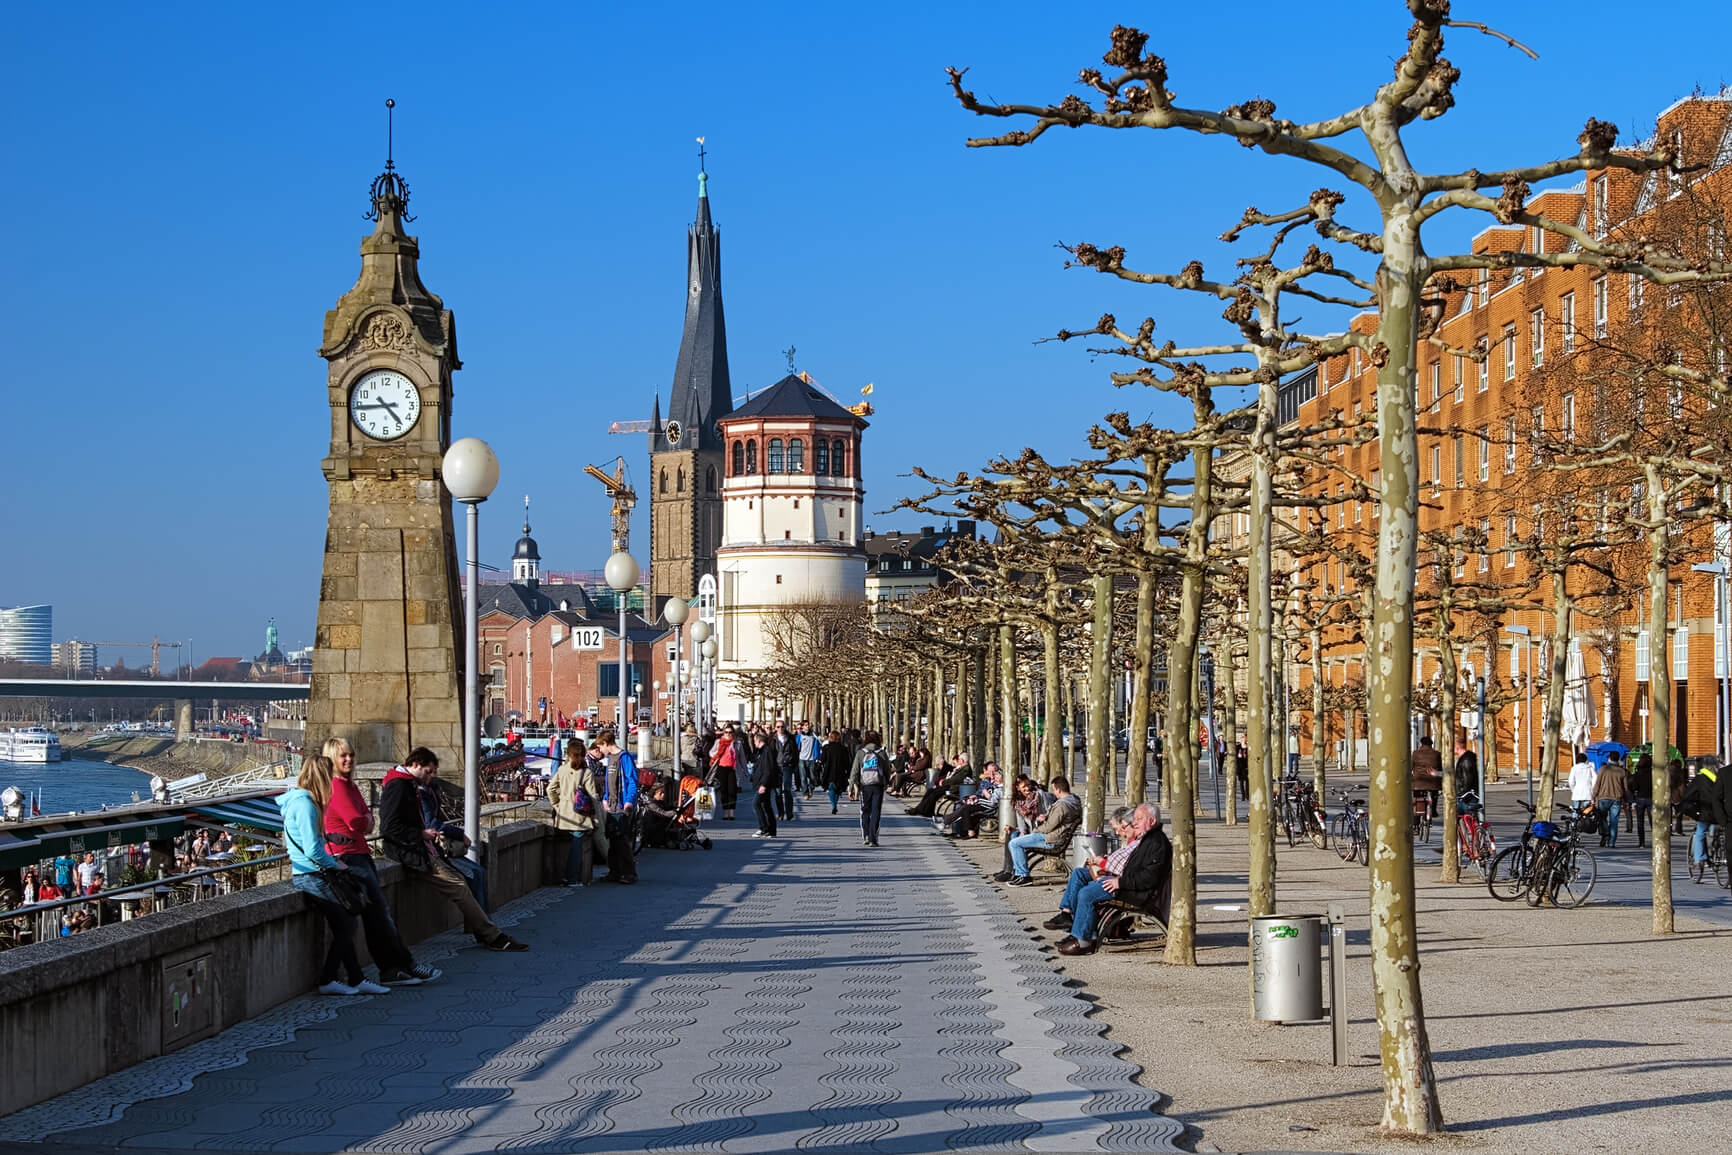 SUMMER: London, UK to Dusseldorf, Germany for only £20 roundtrip (Aug dates)